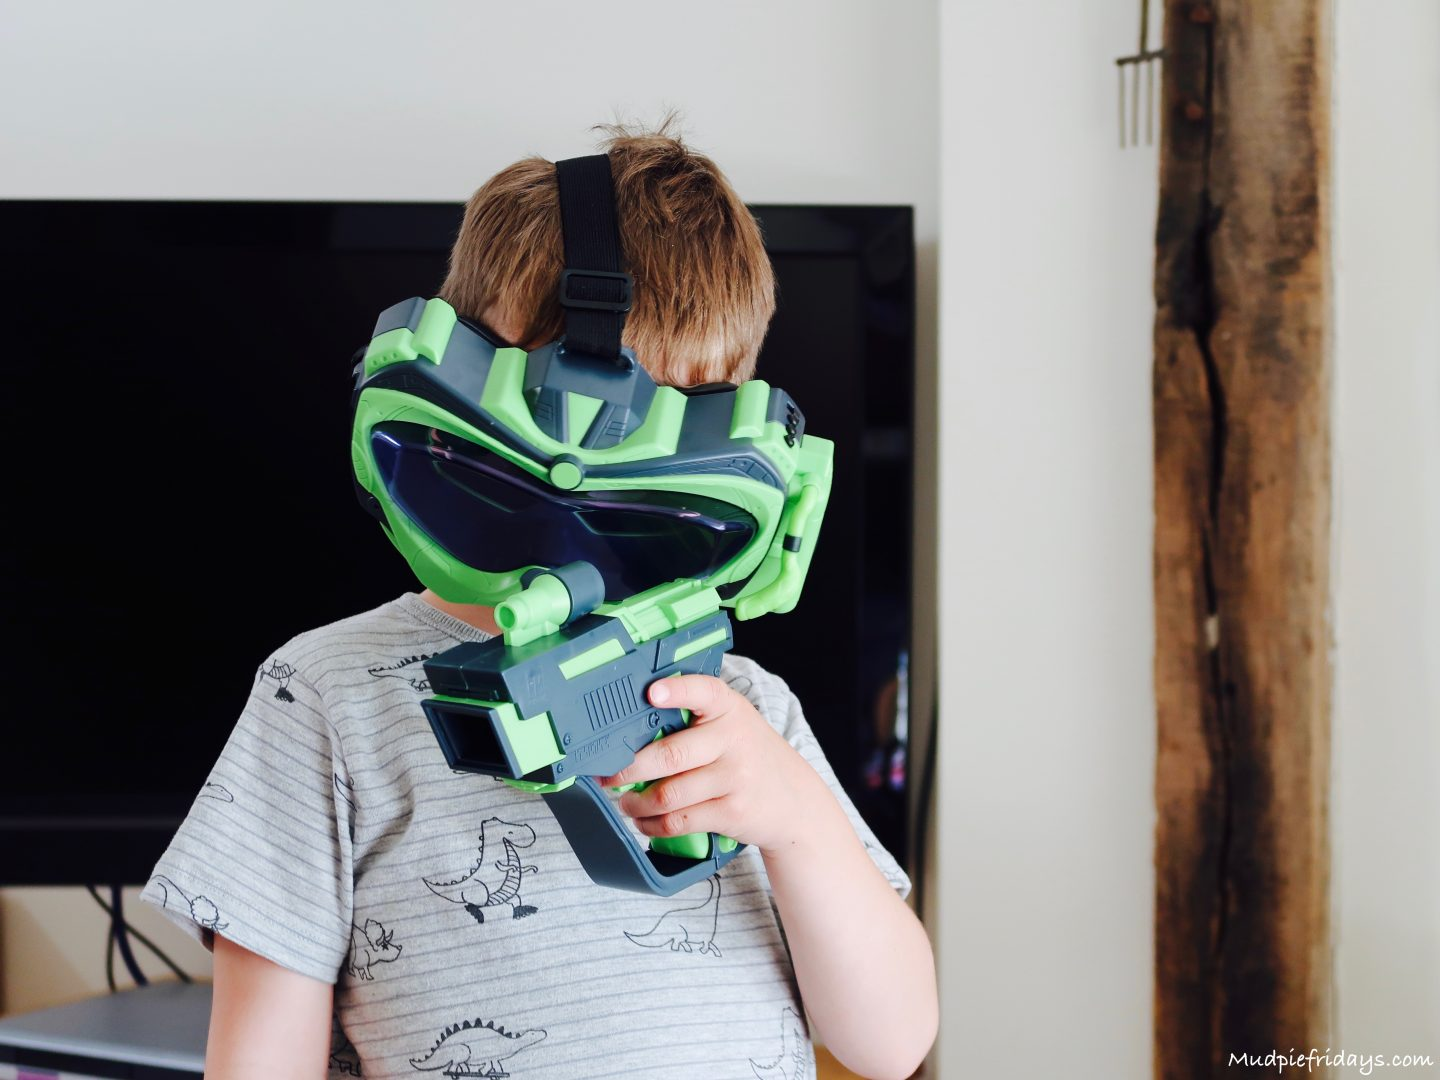 Alien Vision Game Review Google Mask The Goggles Themselves Have Three Settings From Easy Through To Difficult We Started On And Monkey Took Several Attempts Get Hang Of It